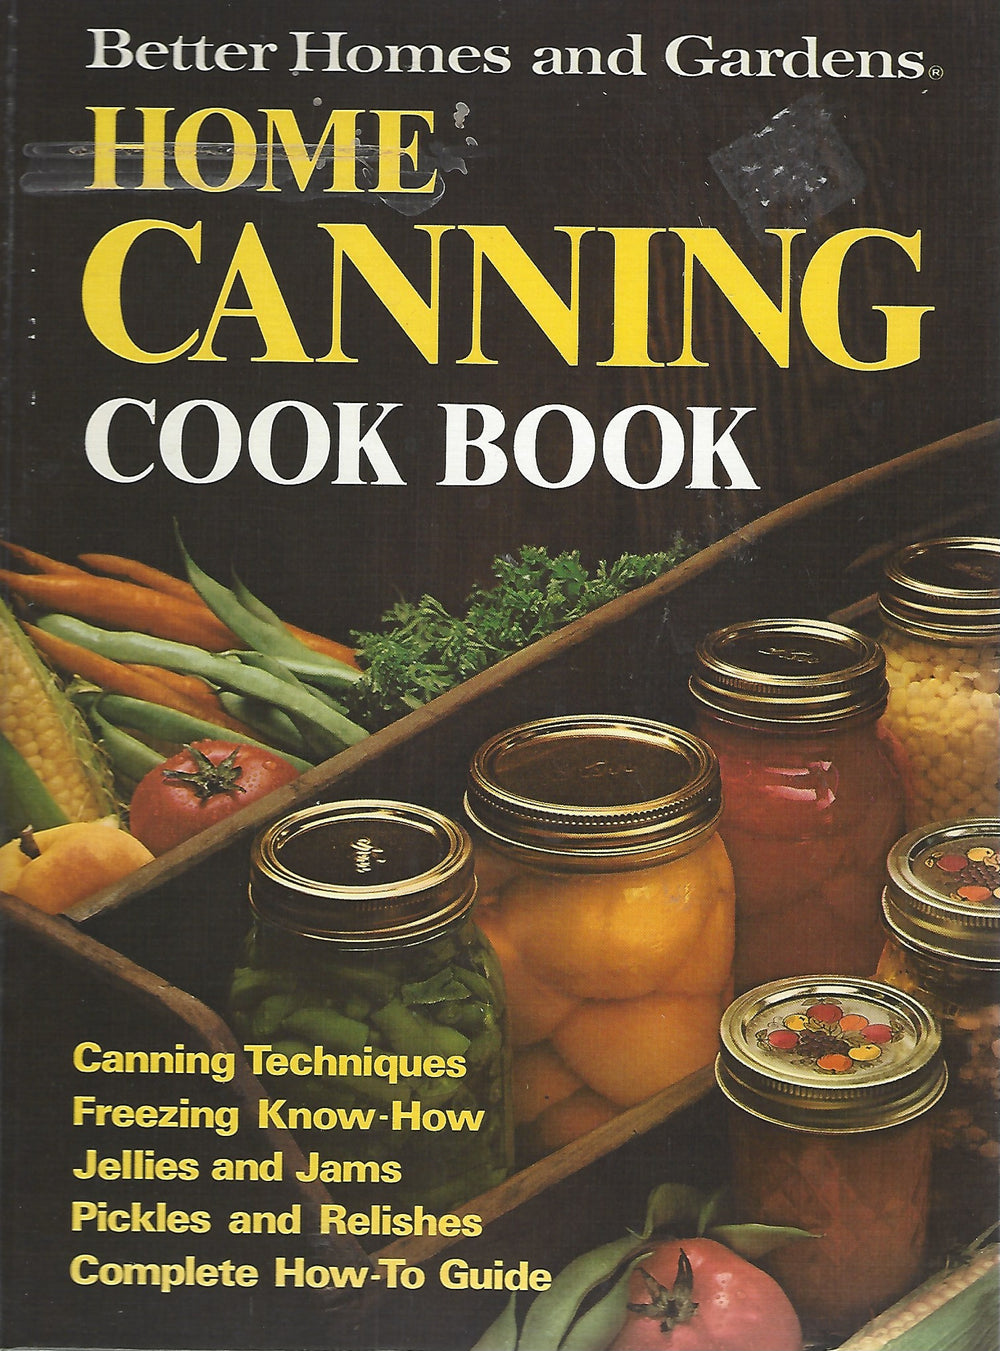 Better Homes and Gardens Home Canning Cook Book (Hardcover)  1974 Second Printing